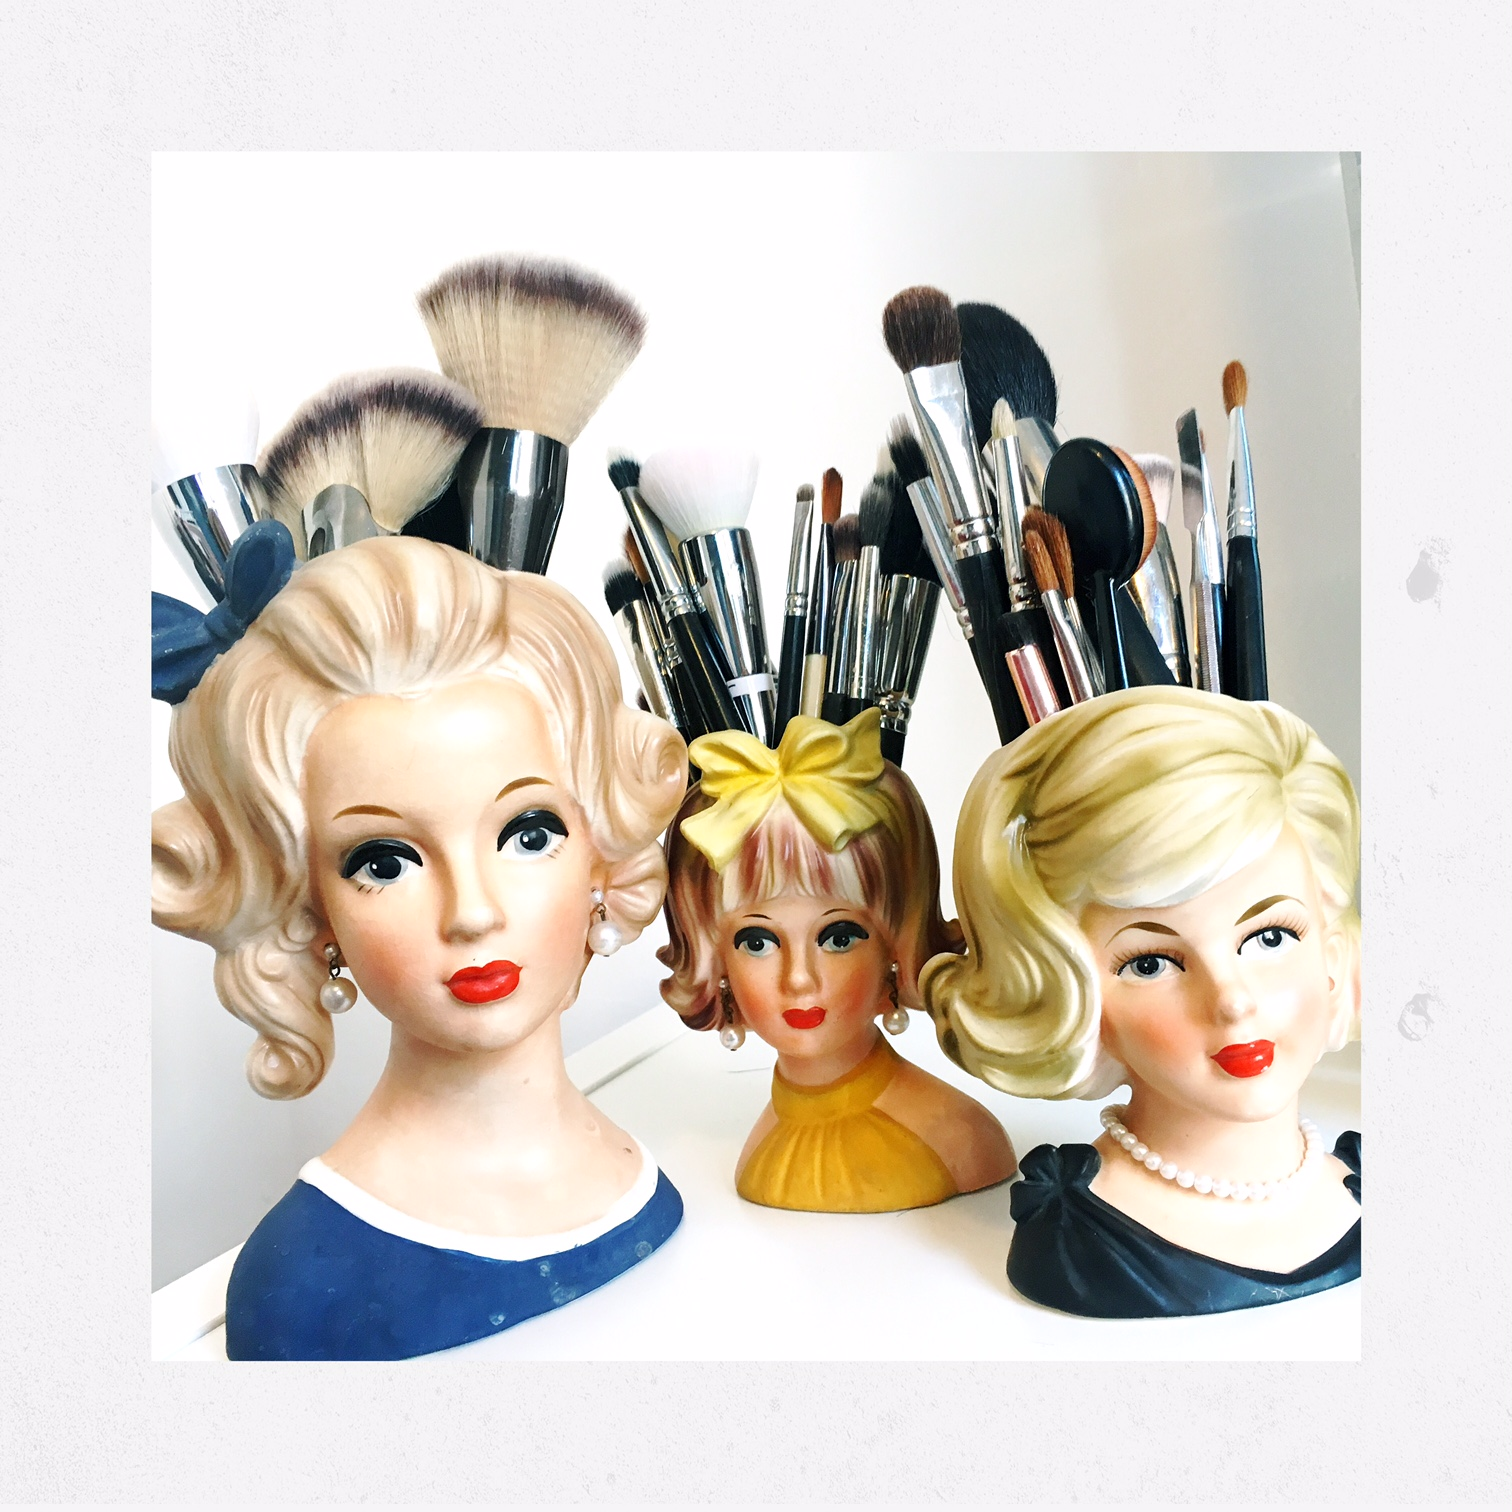 vintage ceramic woman head vases used as makeup brush holders